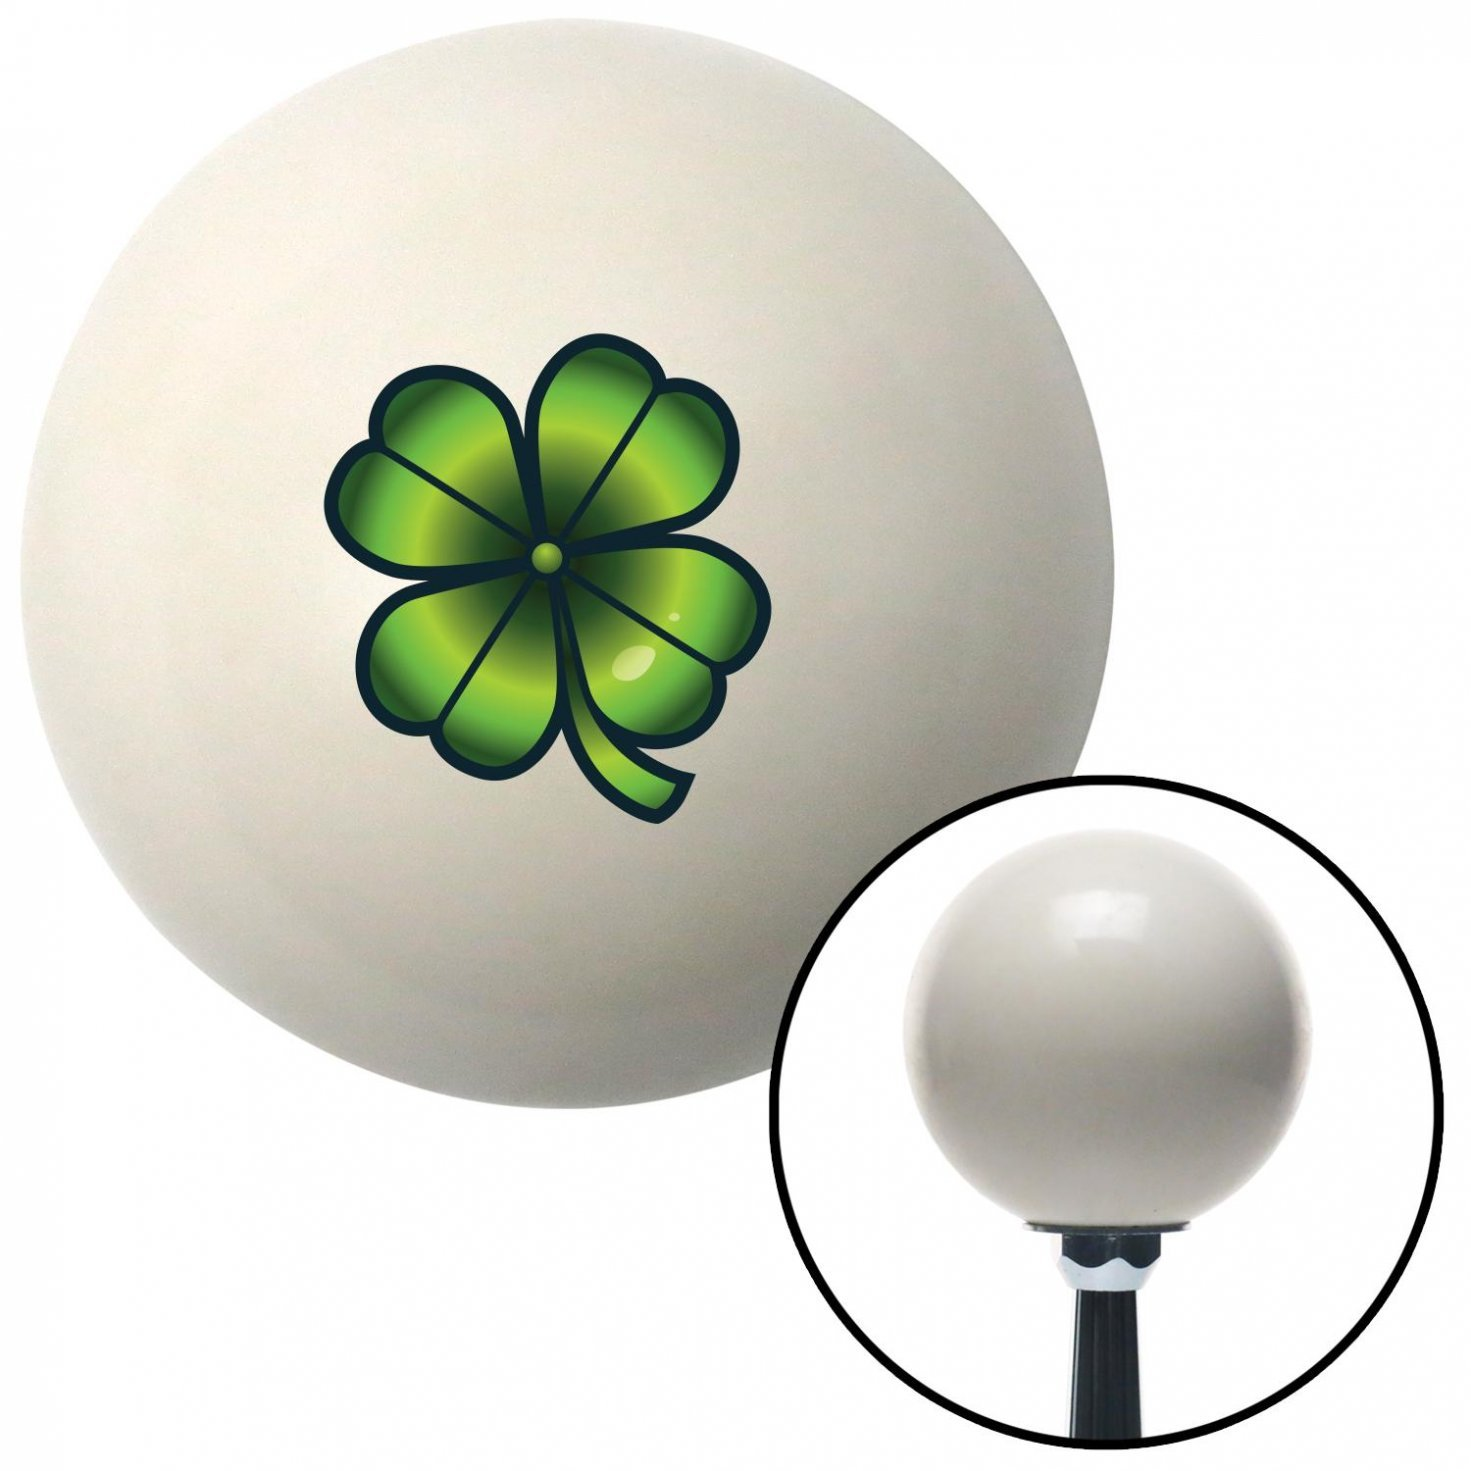 Slots Clover American Shifter 42406 Ivory Shift Knob with 16mm x 1.5 Insert